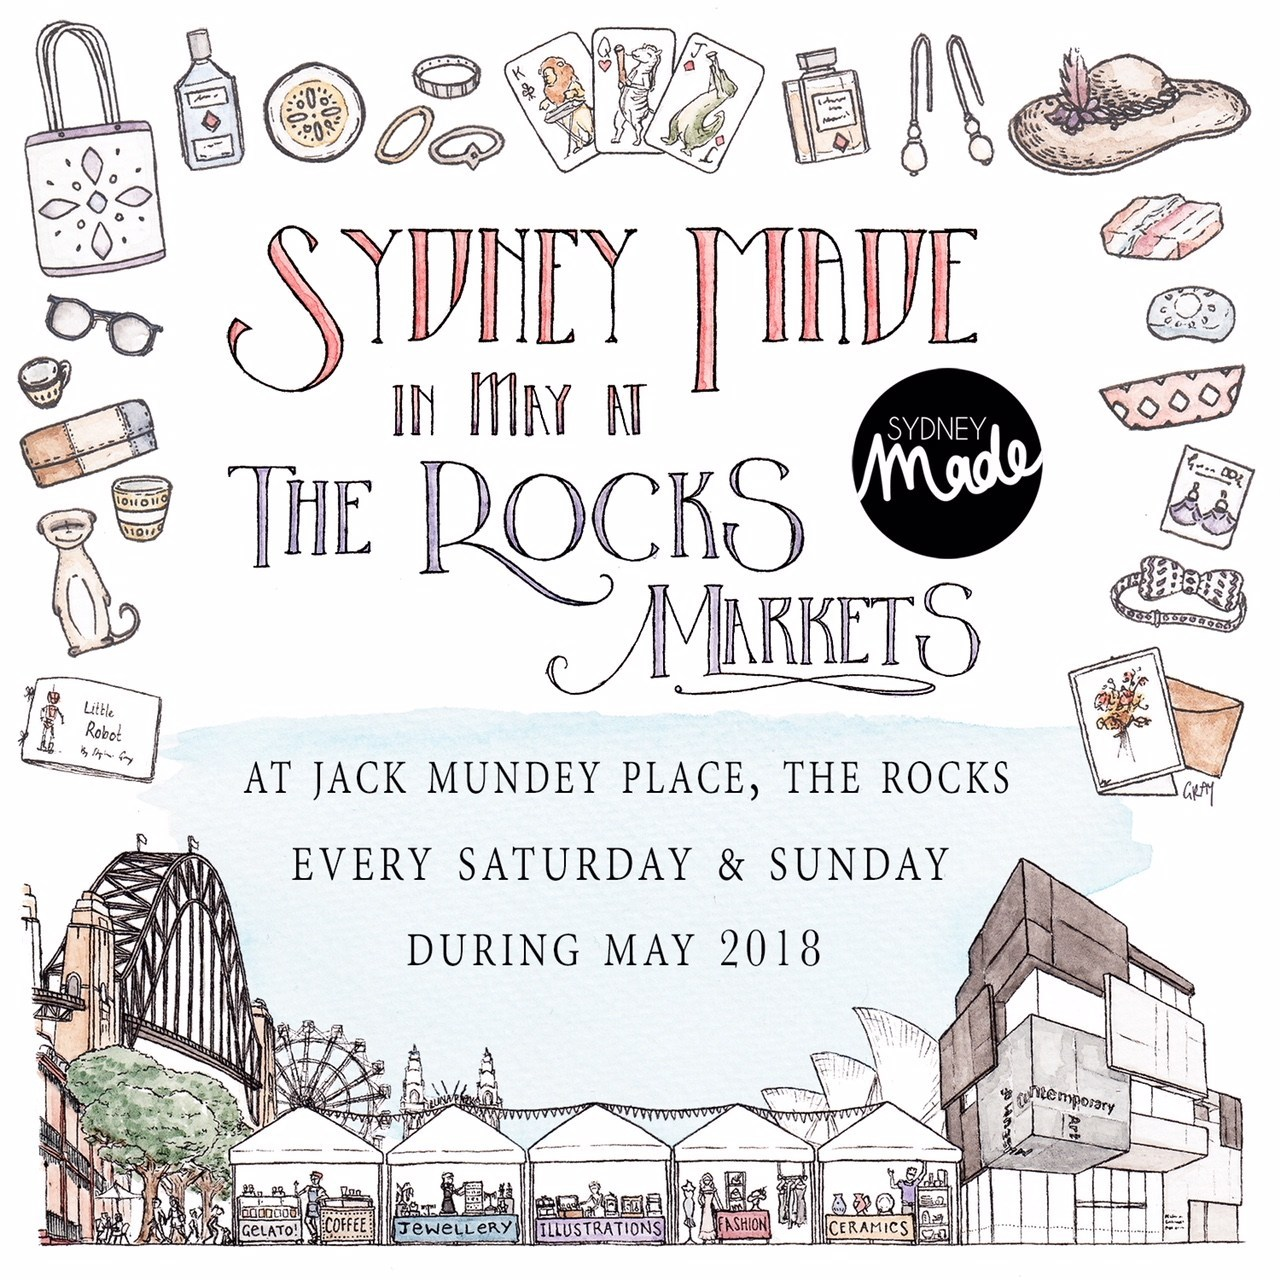 Sydney-Made-in-May-at-the-Rocks-Markets.jpg